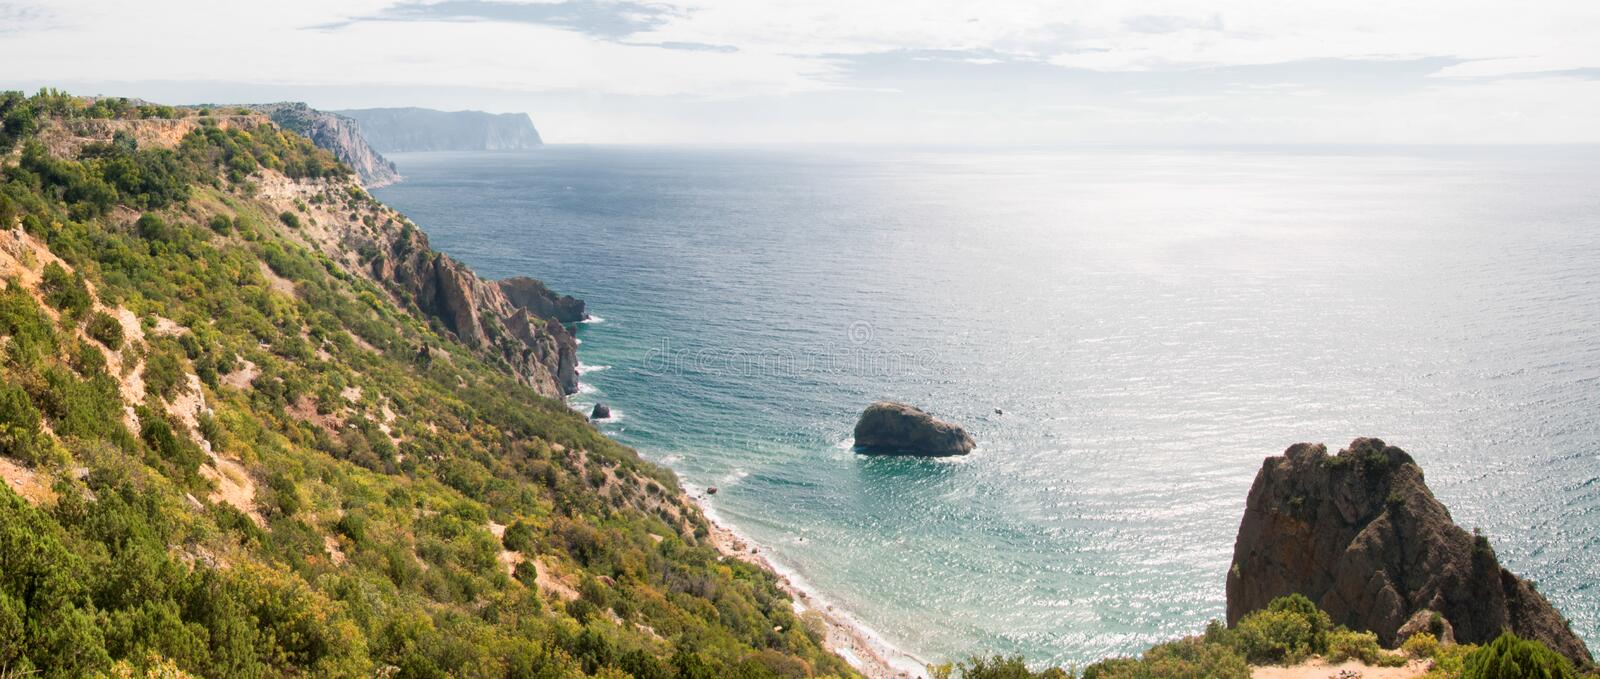 Cape Fiolent. Fiolent cape, Crimea. Black Sea royalty free stock photography